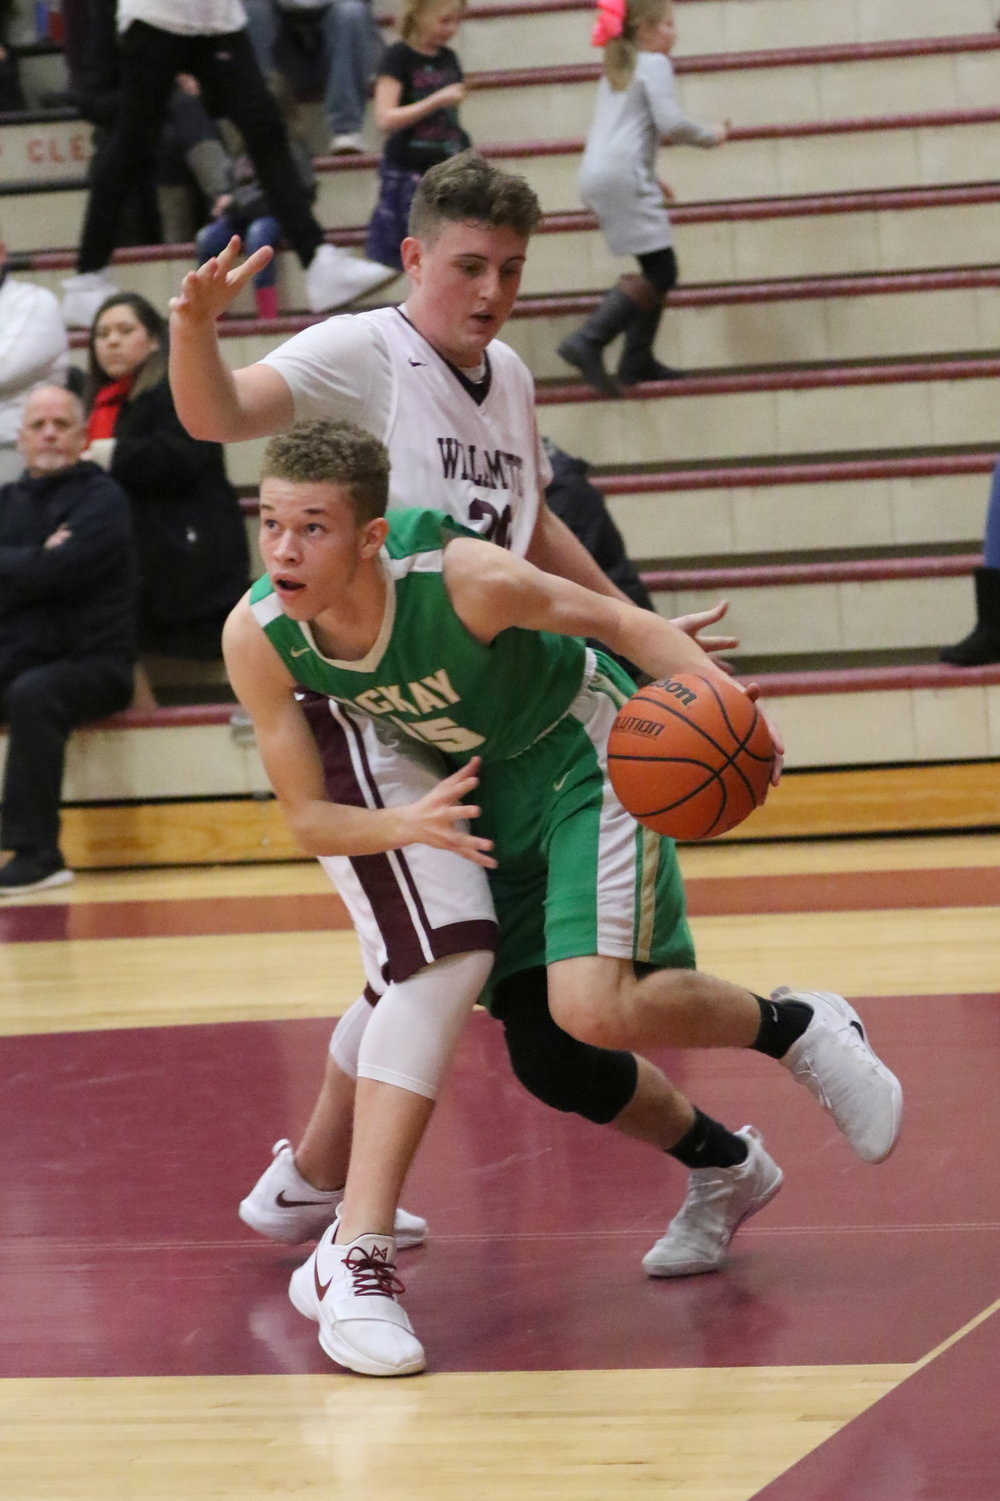 Khyler flashes by a Willamette defender. Photo by Kent Brewer.